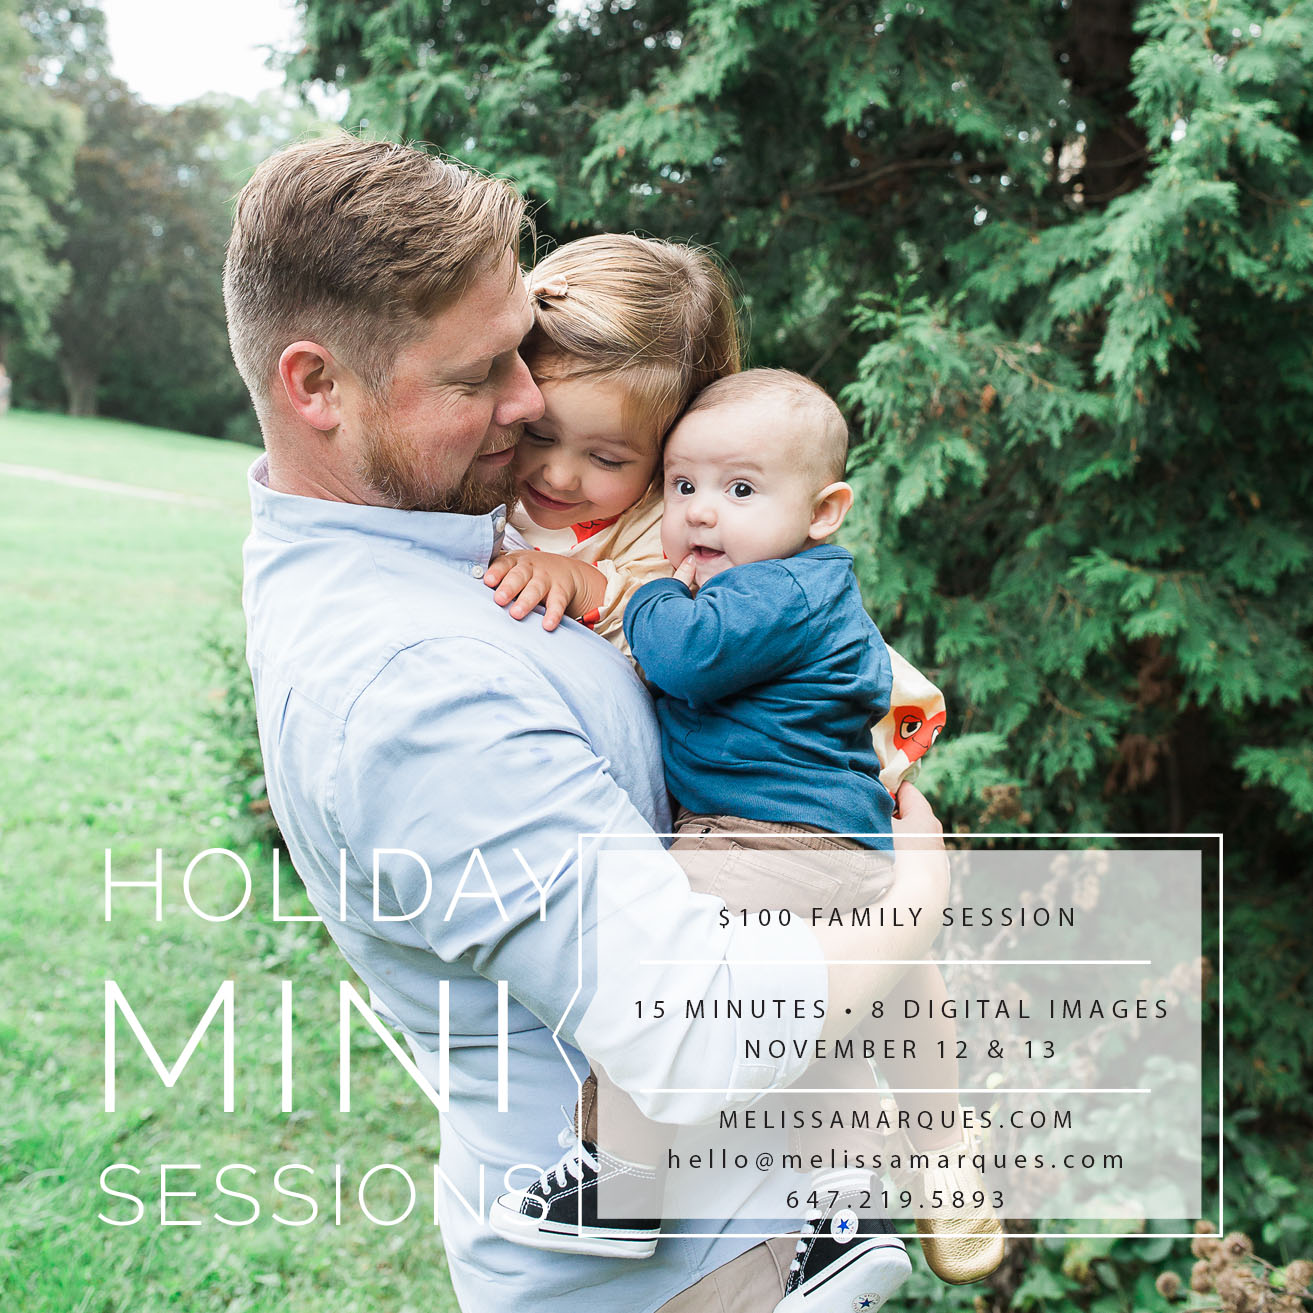 Hi everyone, doing these mini sessions this year. Contact me for more details or email me at Hello@melissamarques.com